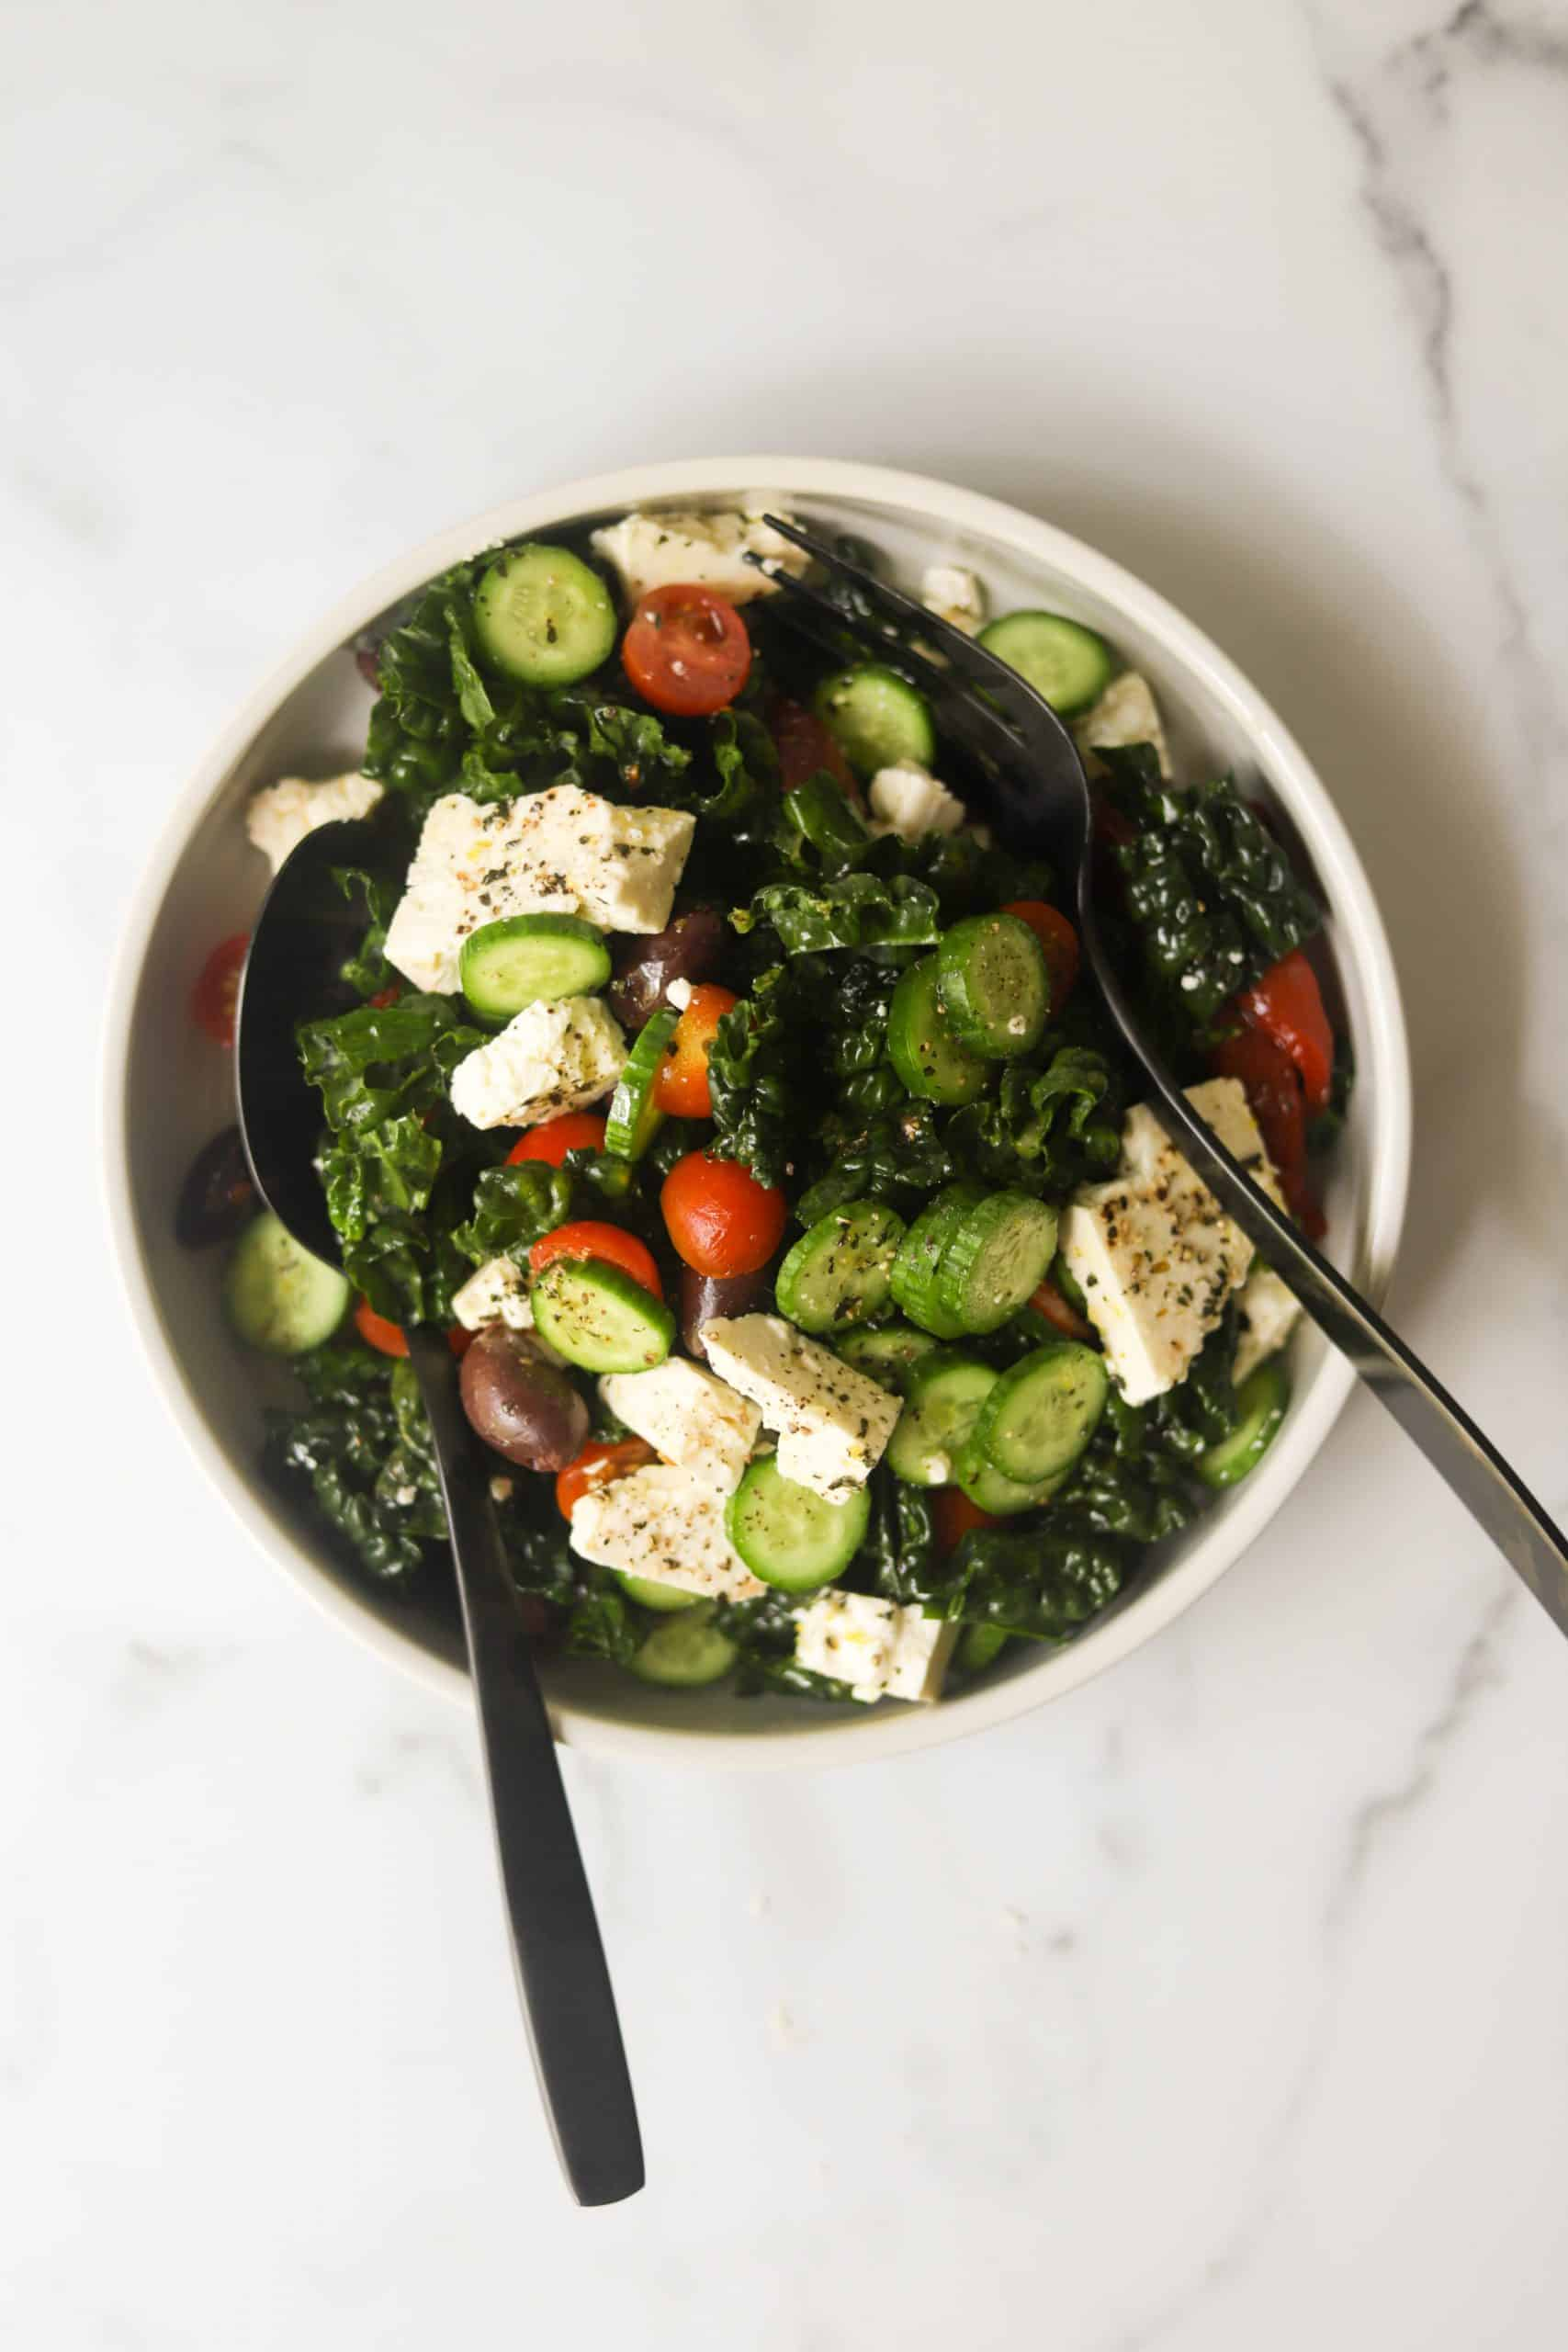 A bowl of Mediterranean kale salad with spoons.